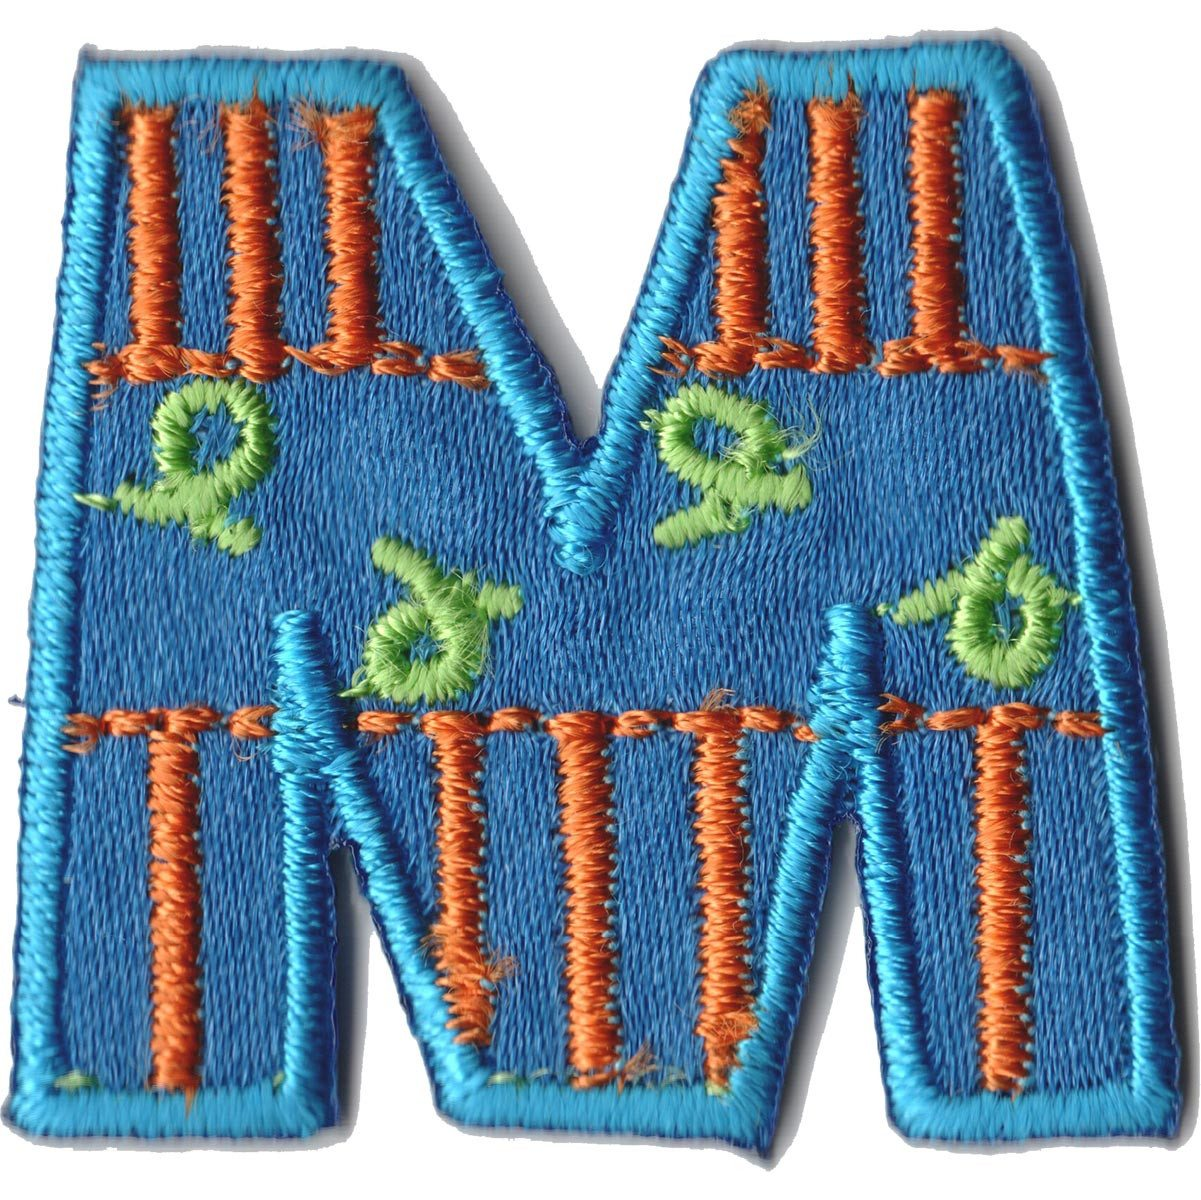 Embroidered - Alphabet Letter M